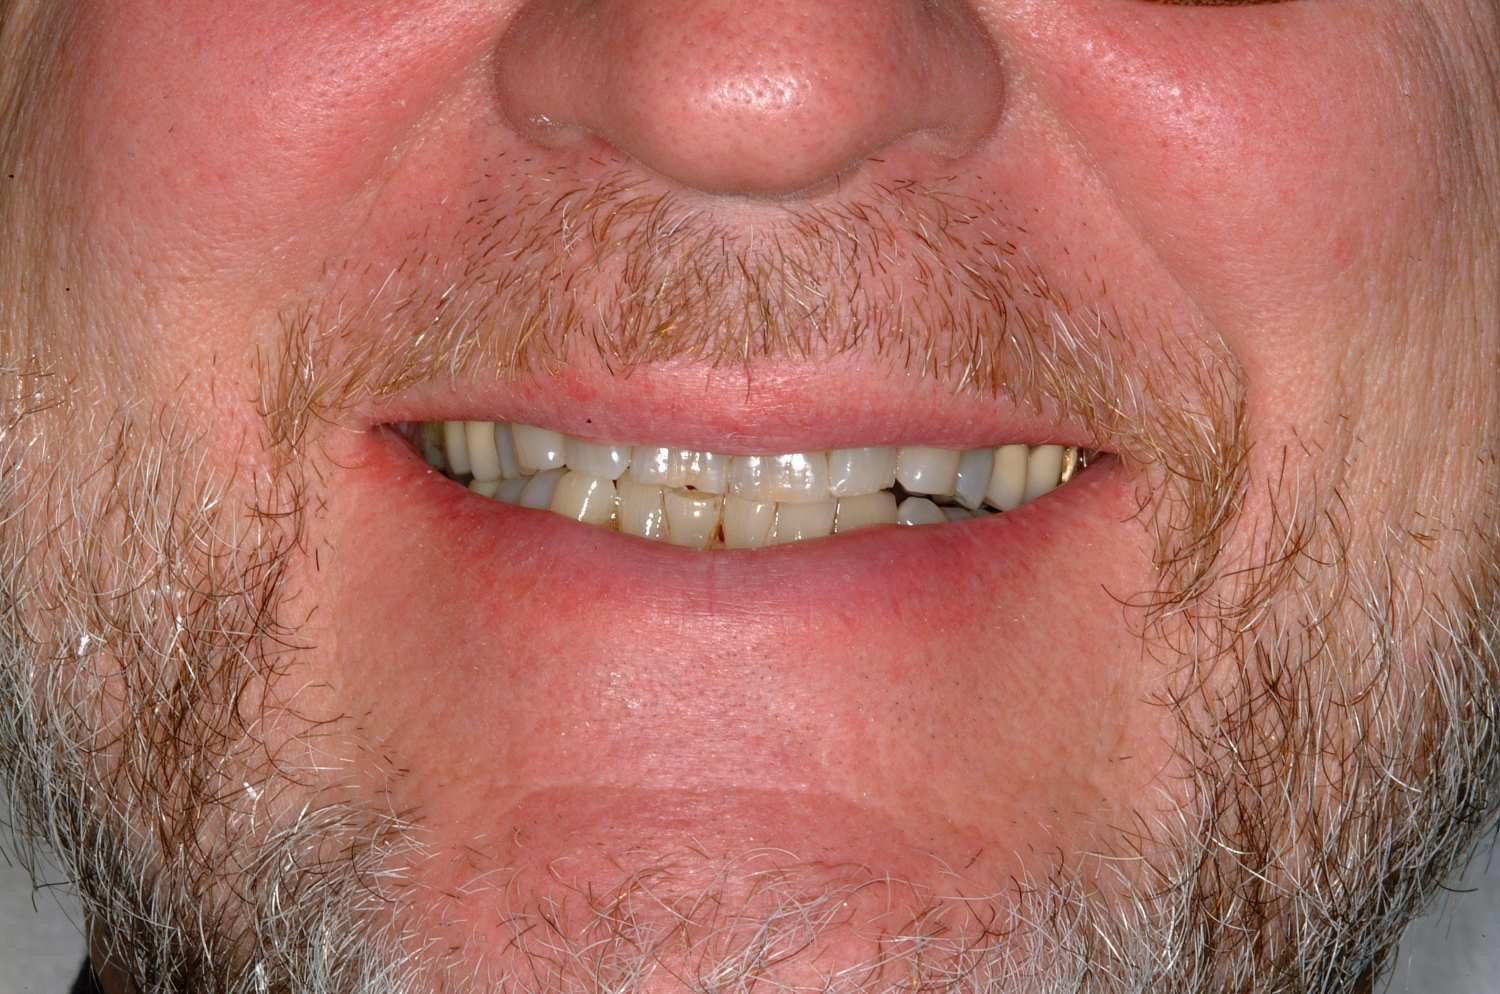 Corrected bite and shape of teeth